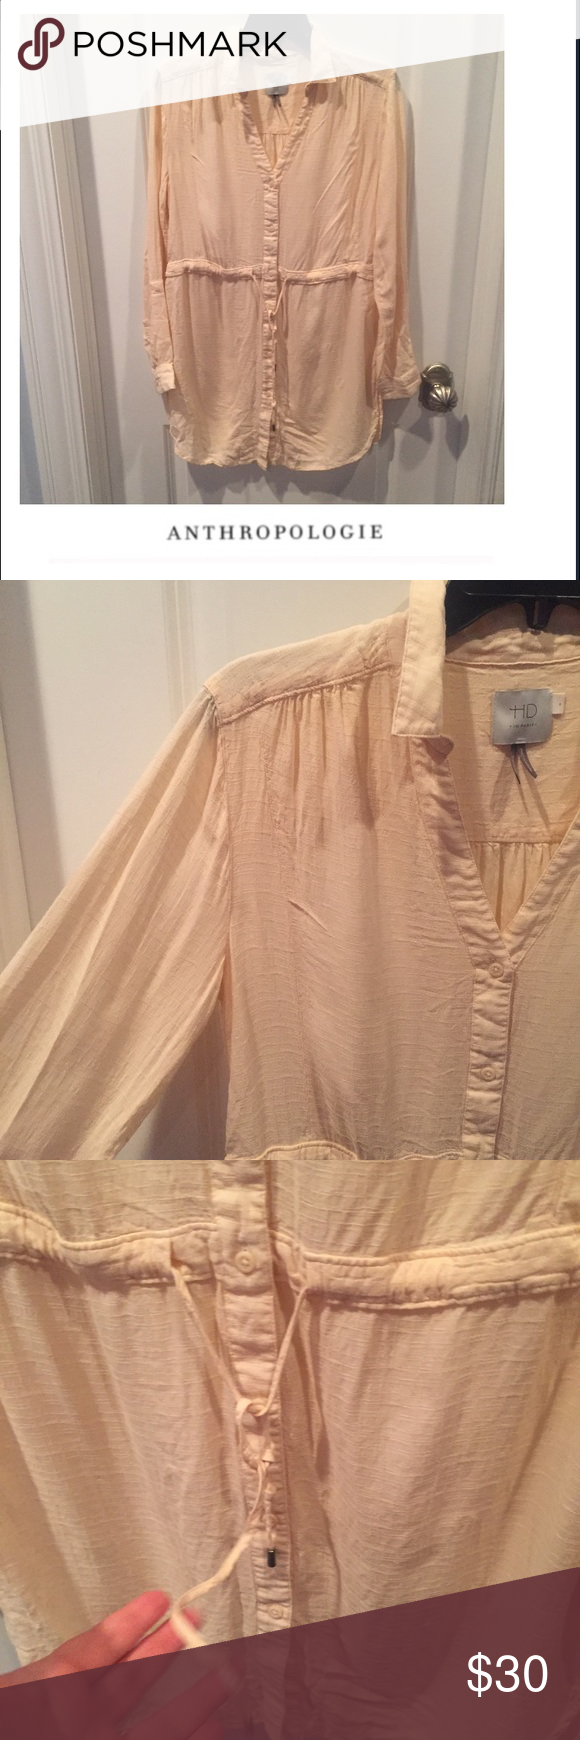 """Anthropologie HD in Paris Pale Pink Tunic Anthropologie HD in Paris Pale Pink Tunic. 17"""" bust. 29"""" long. Rounded hem. Side slits. Gently worn. Great condition. Gently worn. Great condition. Feel free to make an offer or bundle & save. Anthropologie Tops Tunics"""